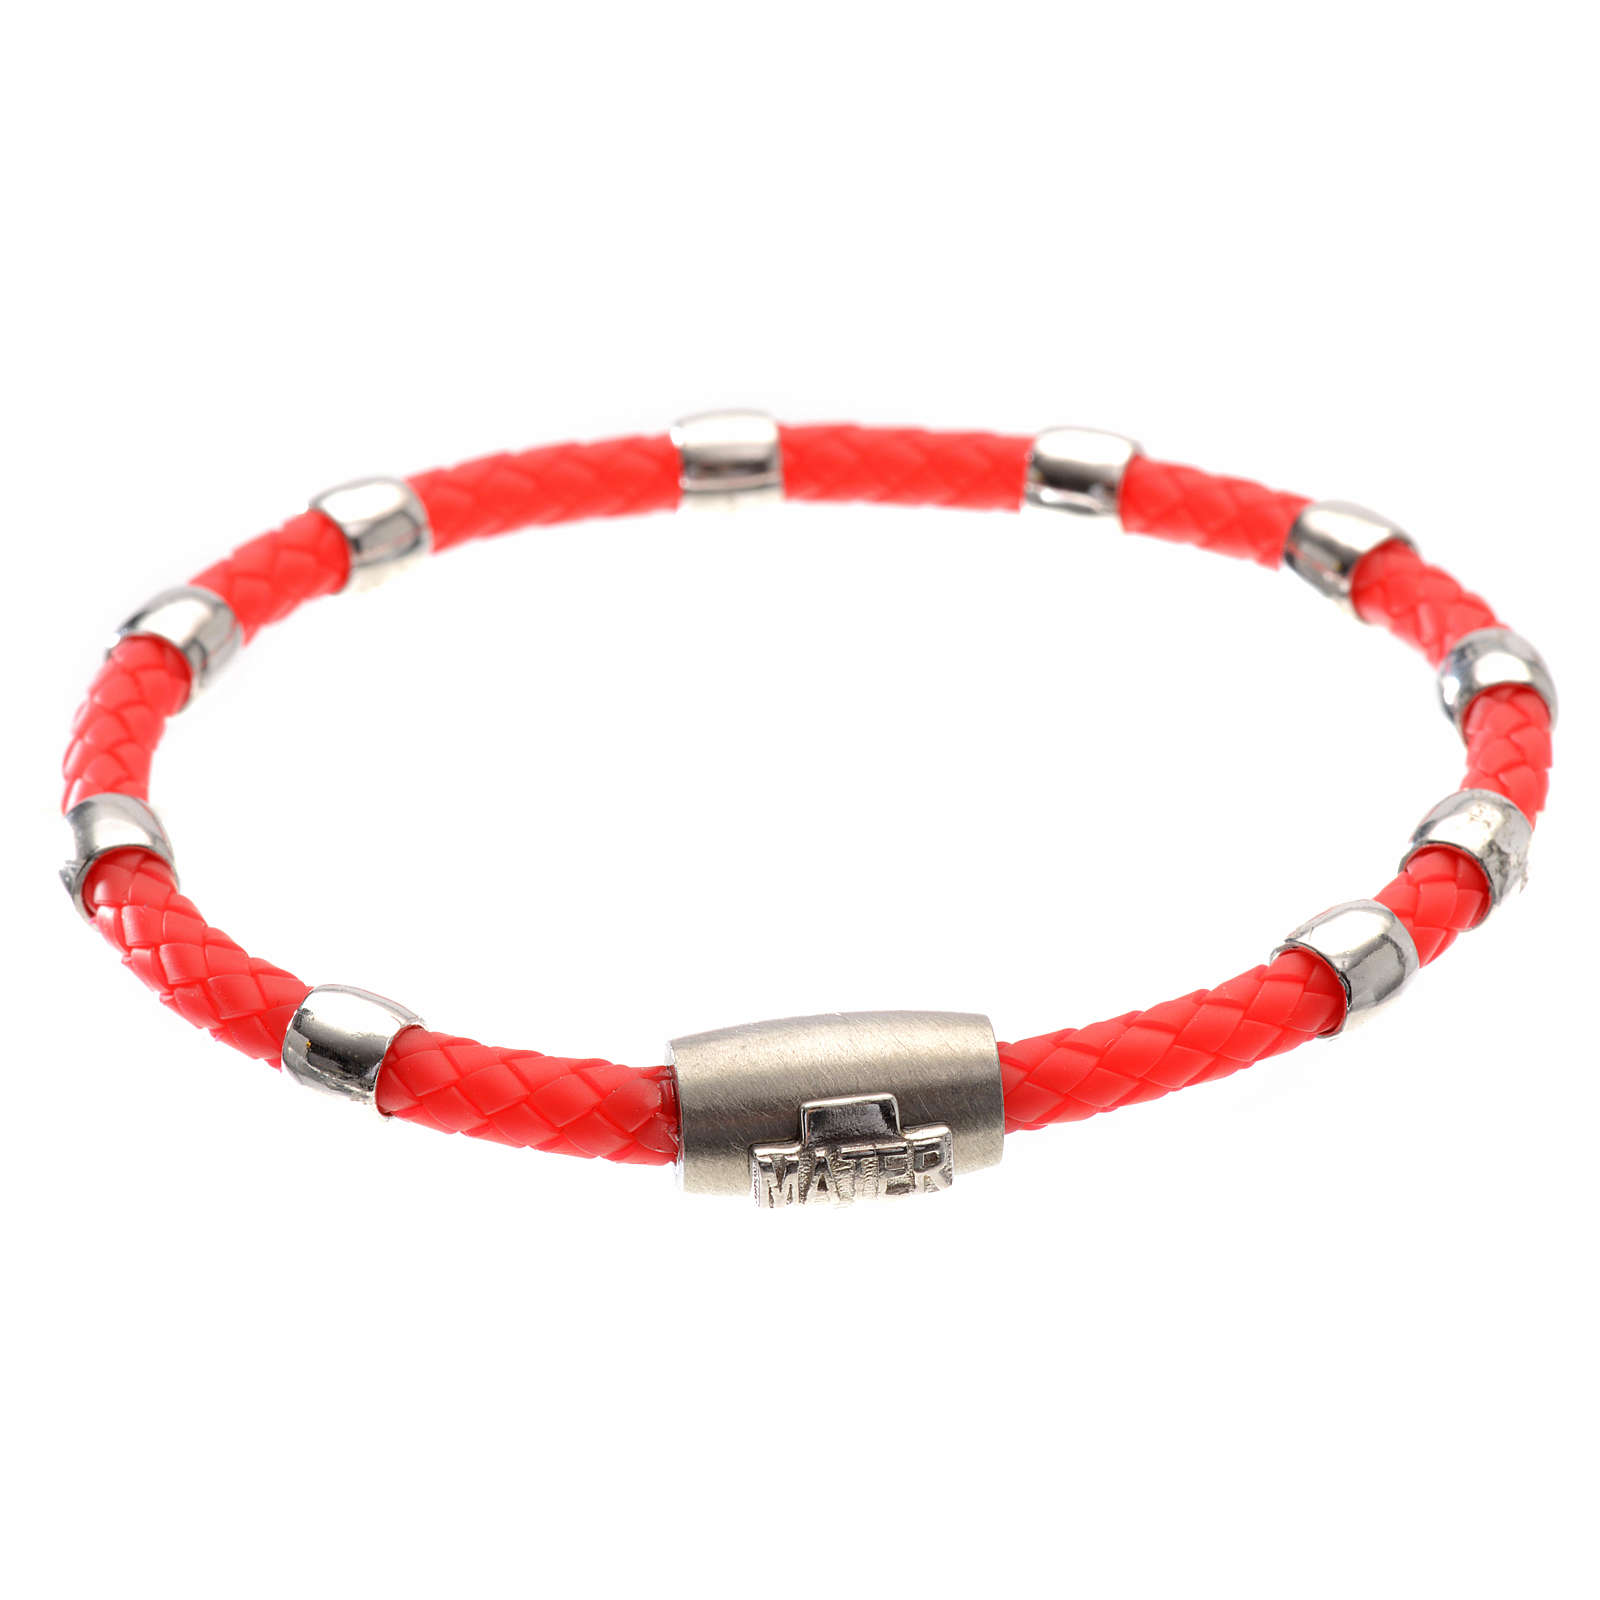 One decade bracelet in silver and red leather, MATER jewels 4